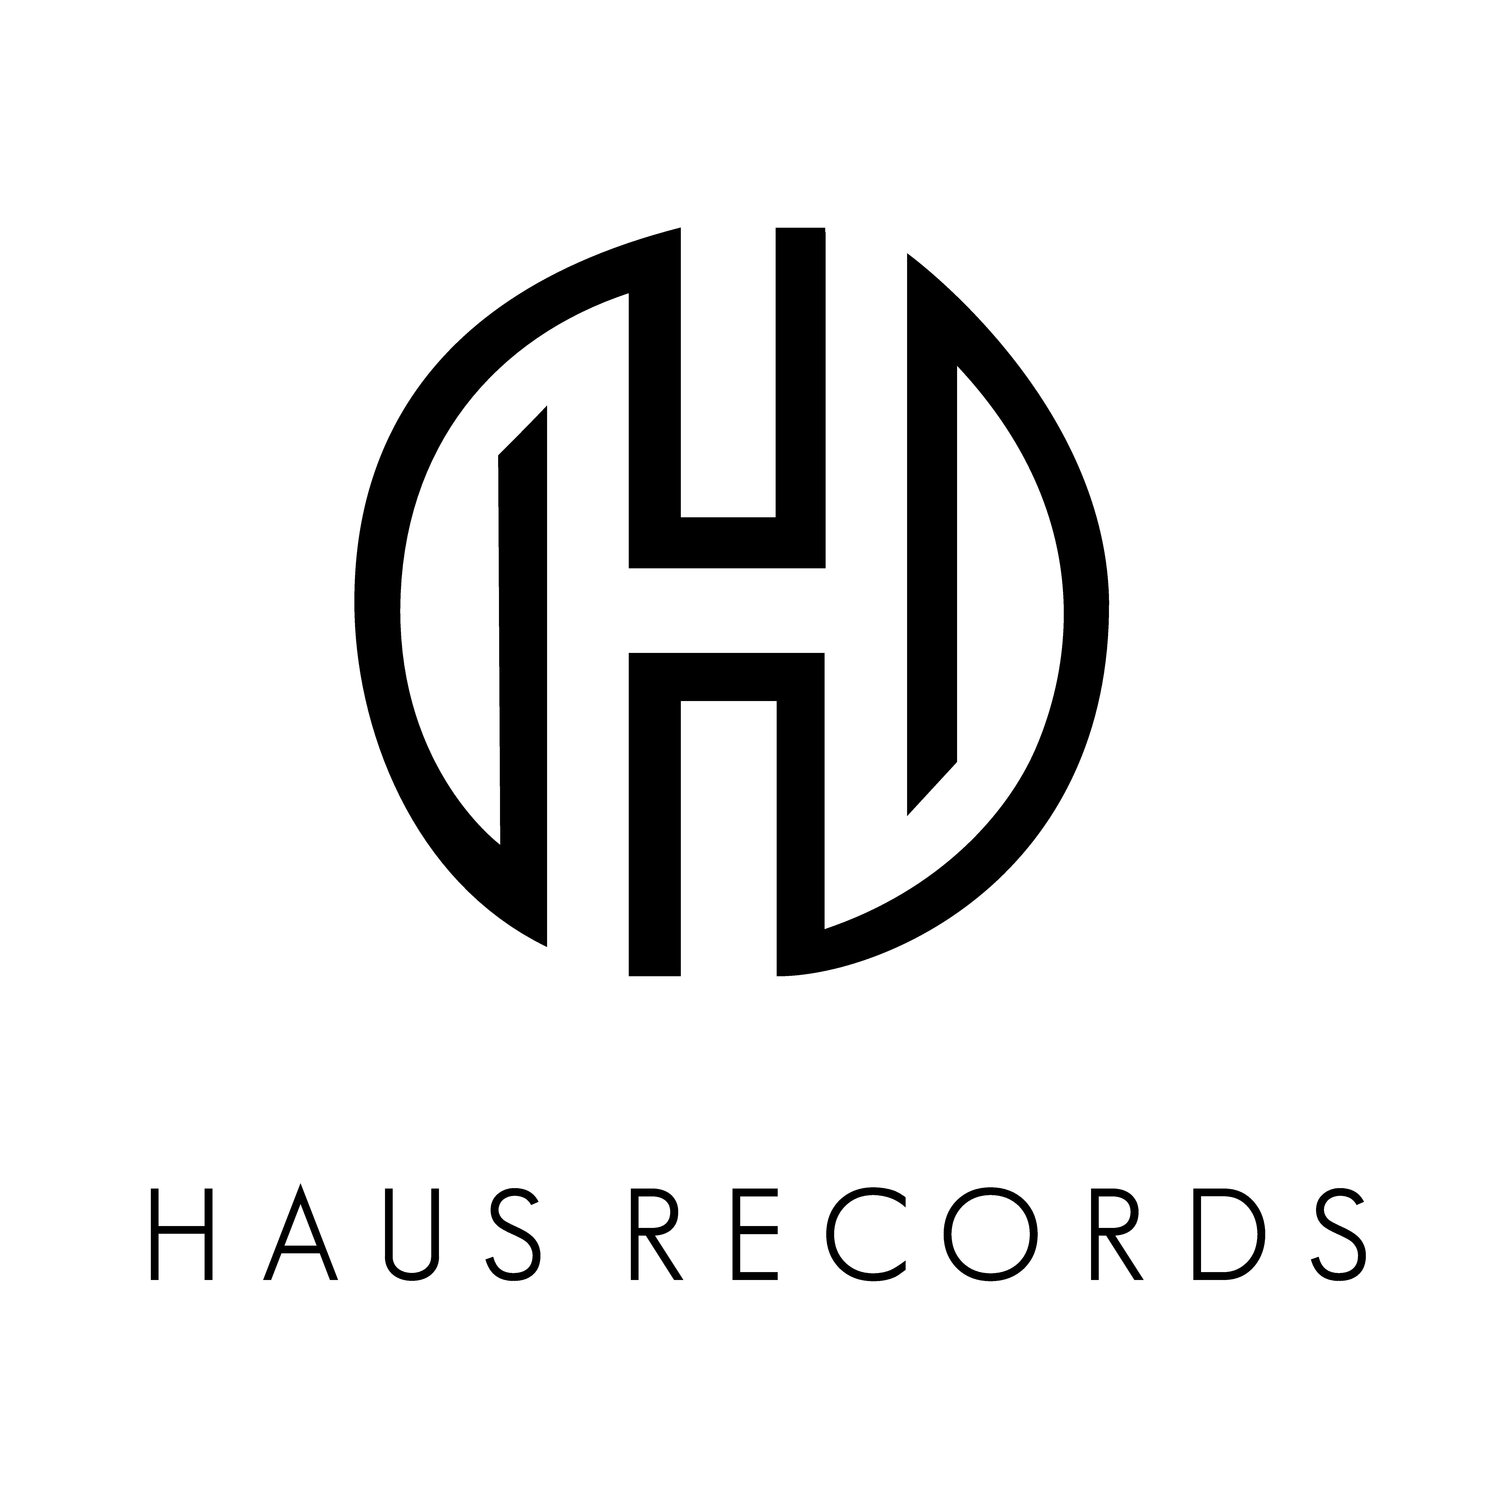 HAUS RECORDS